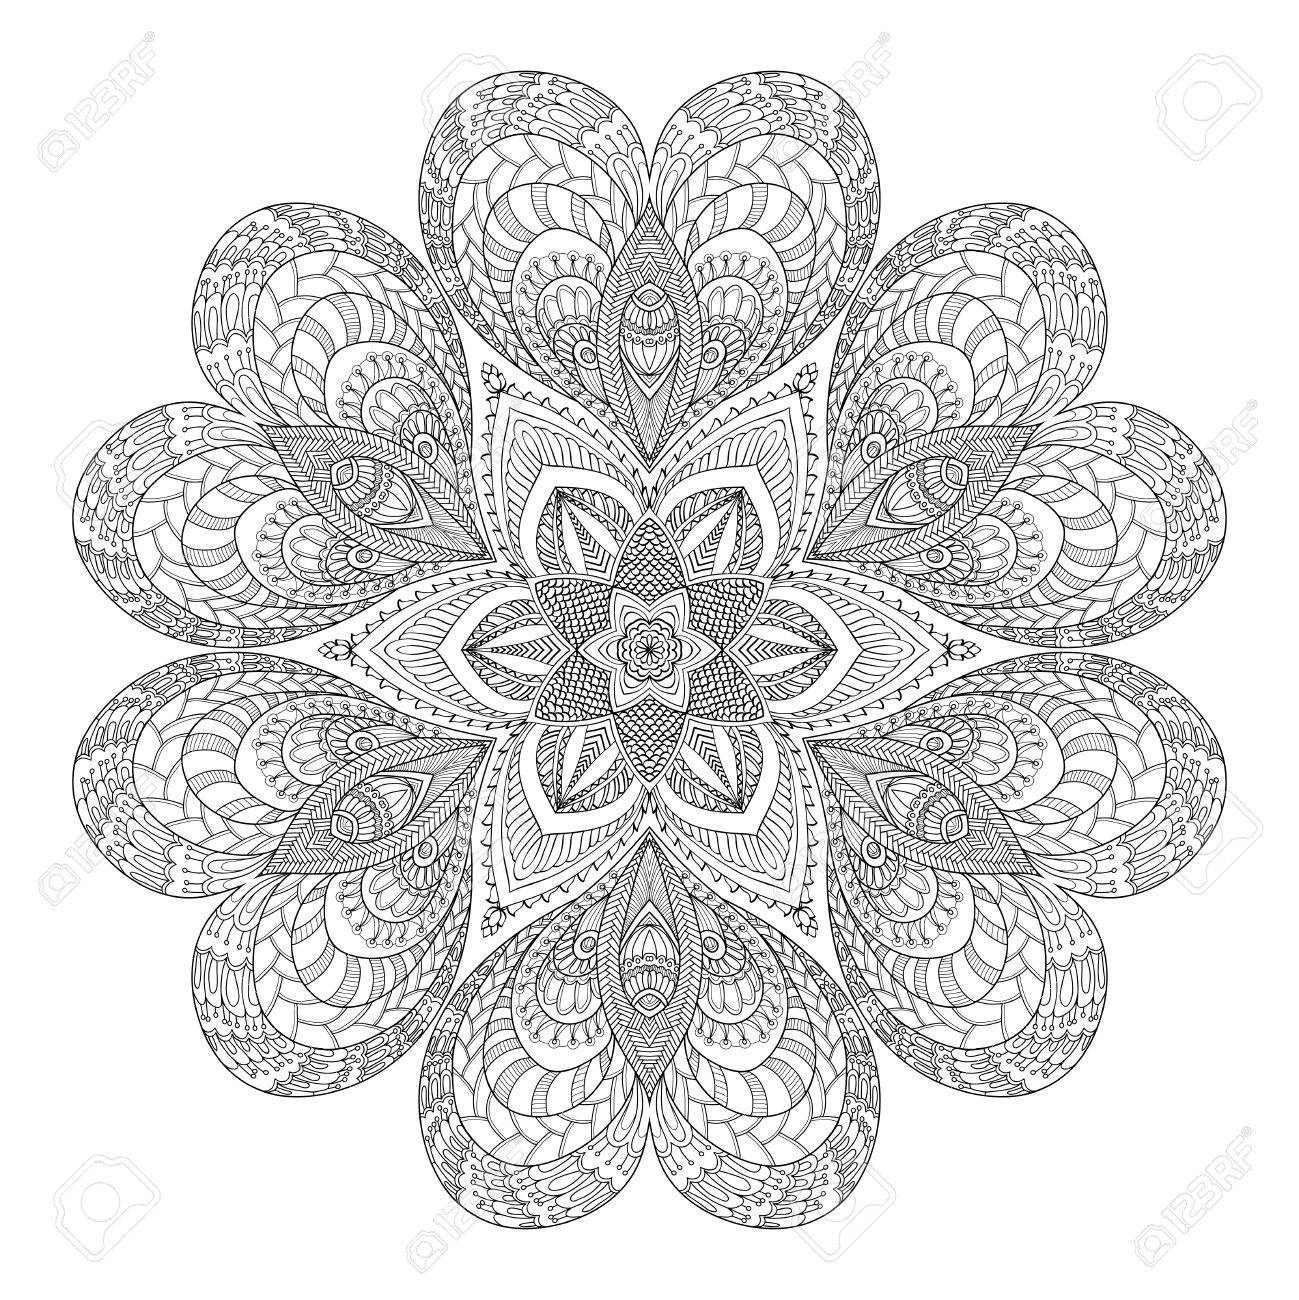 1299x1300 Decorative Mandala With Love Hearts. Coloring Book For Adult